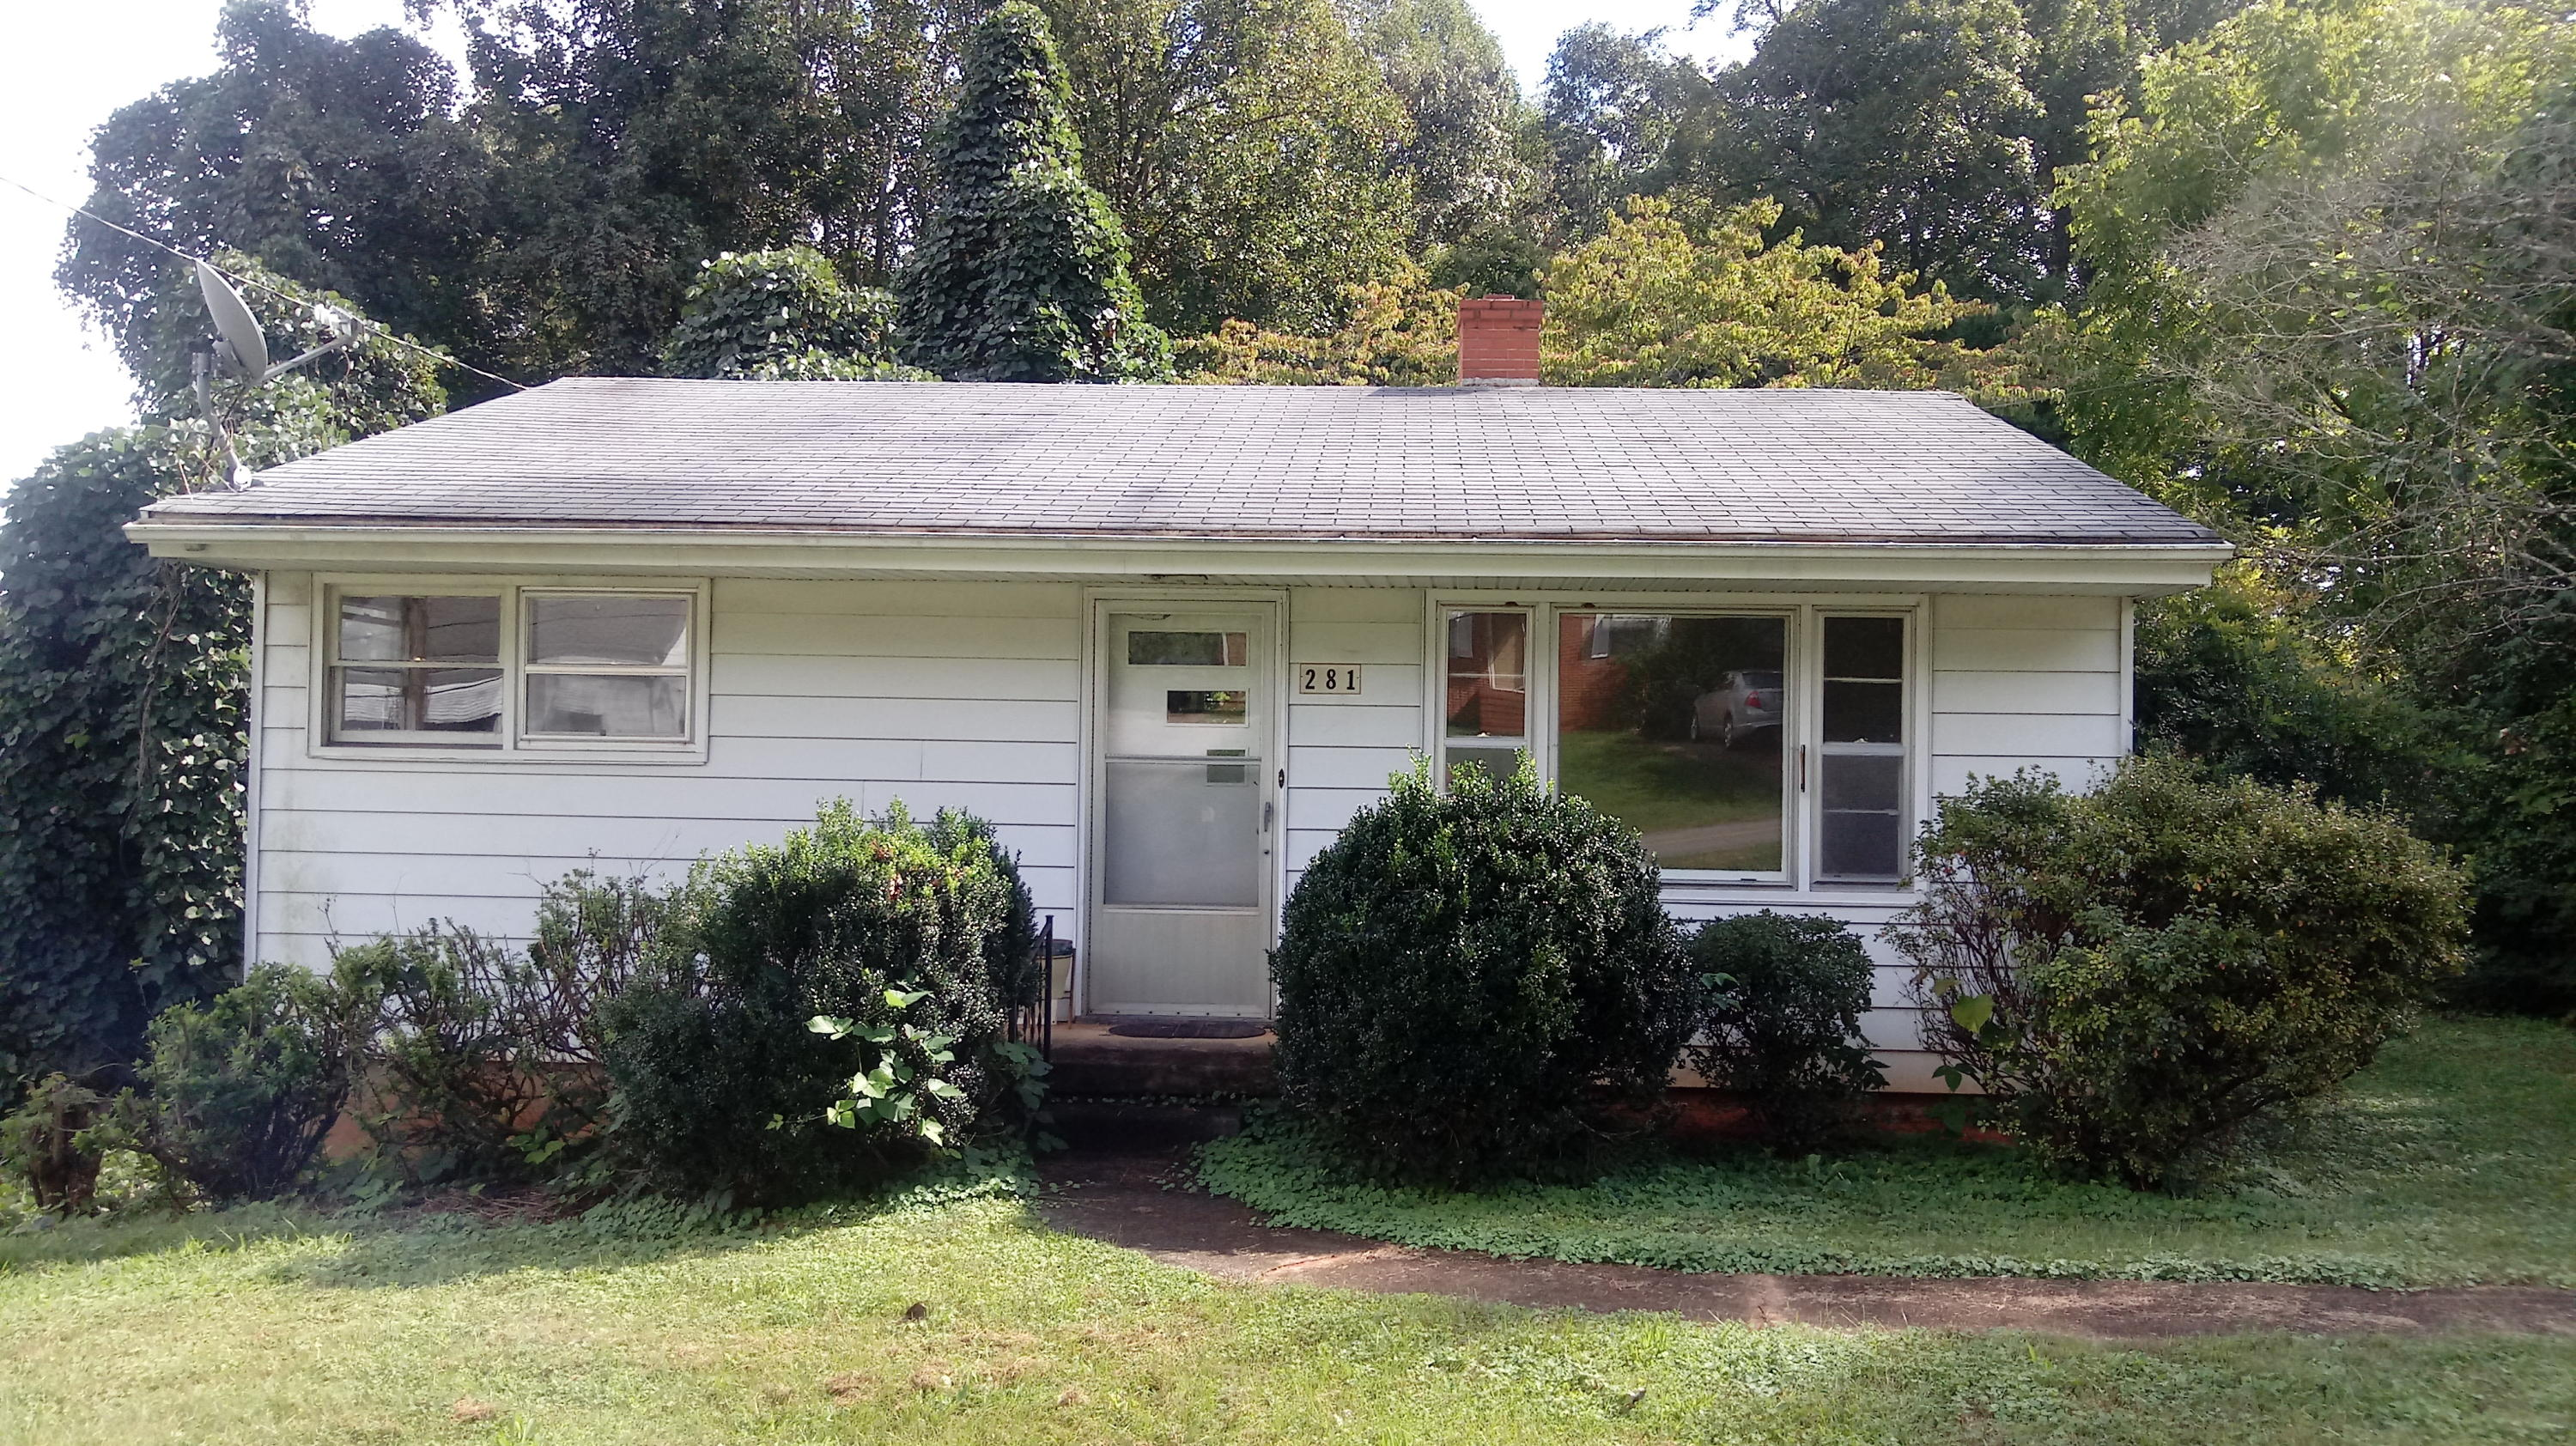 Photo of 281 Paul ST Collinsville VA 24078